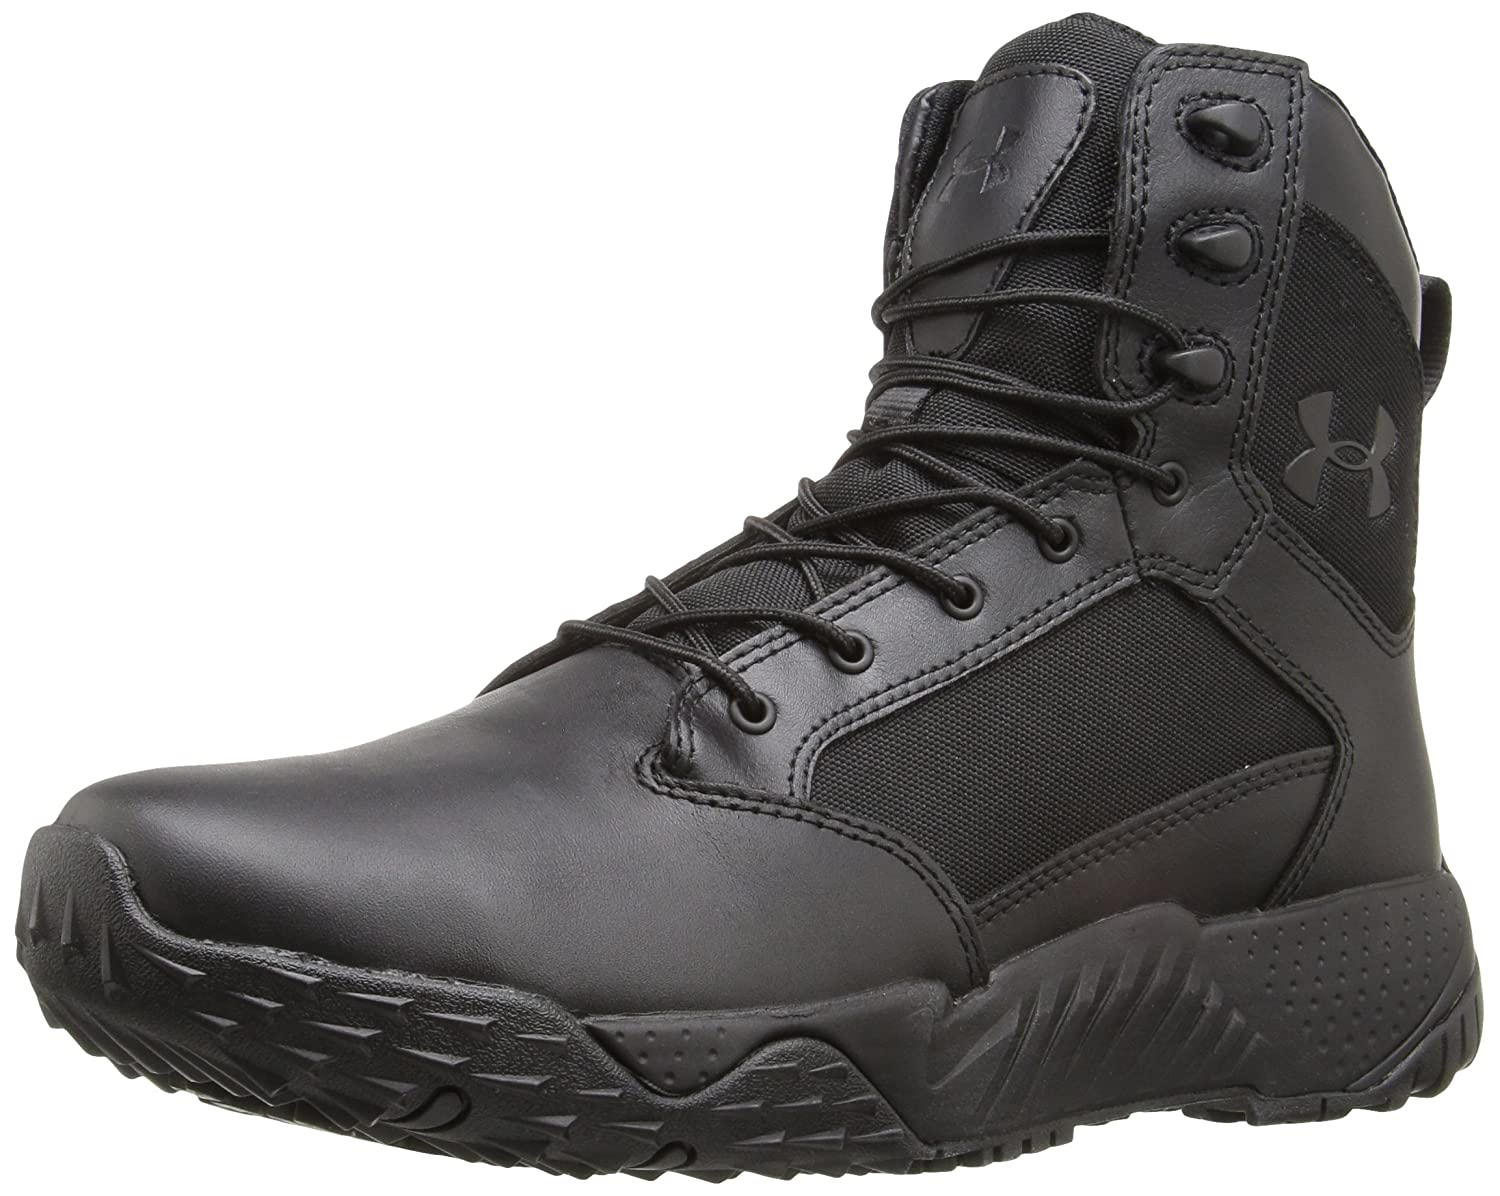 Under Armour Men's Stellar Military and Tactical Boot 1268951